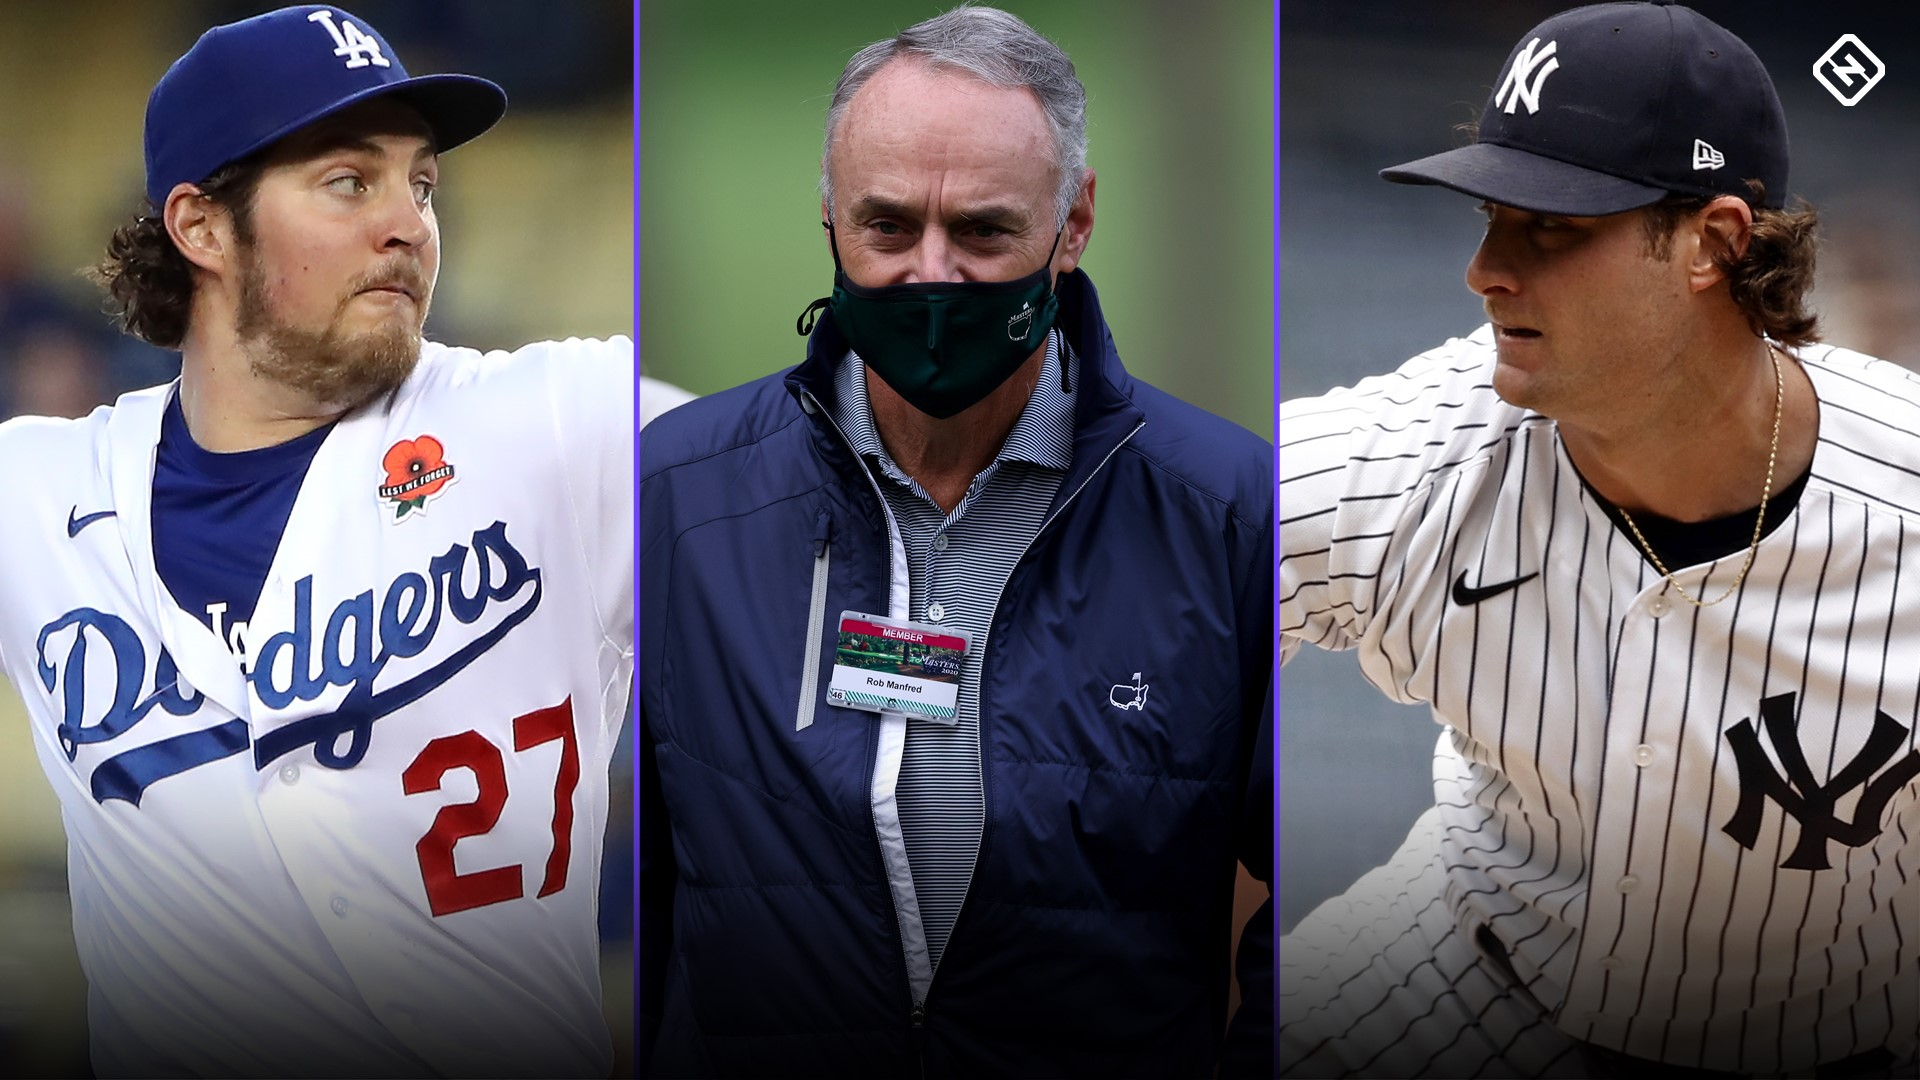 Baseball's Plot: What to Know About MLB's 'Crisis' With Pitchers and Foreign Substances